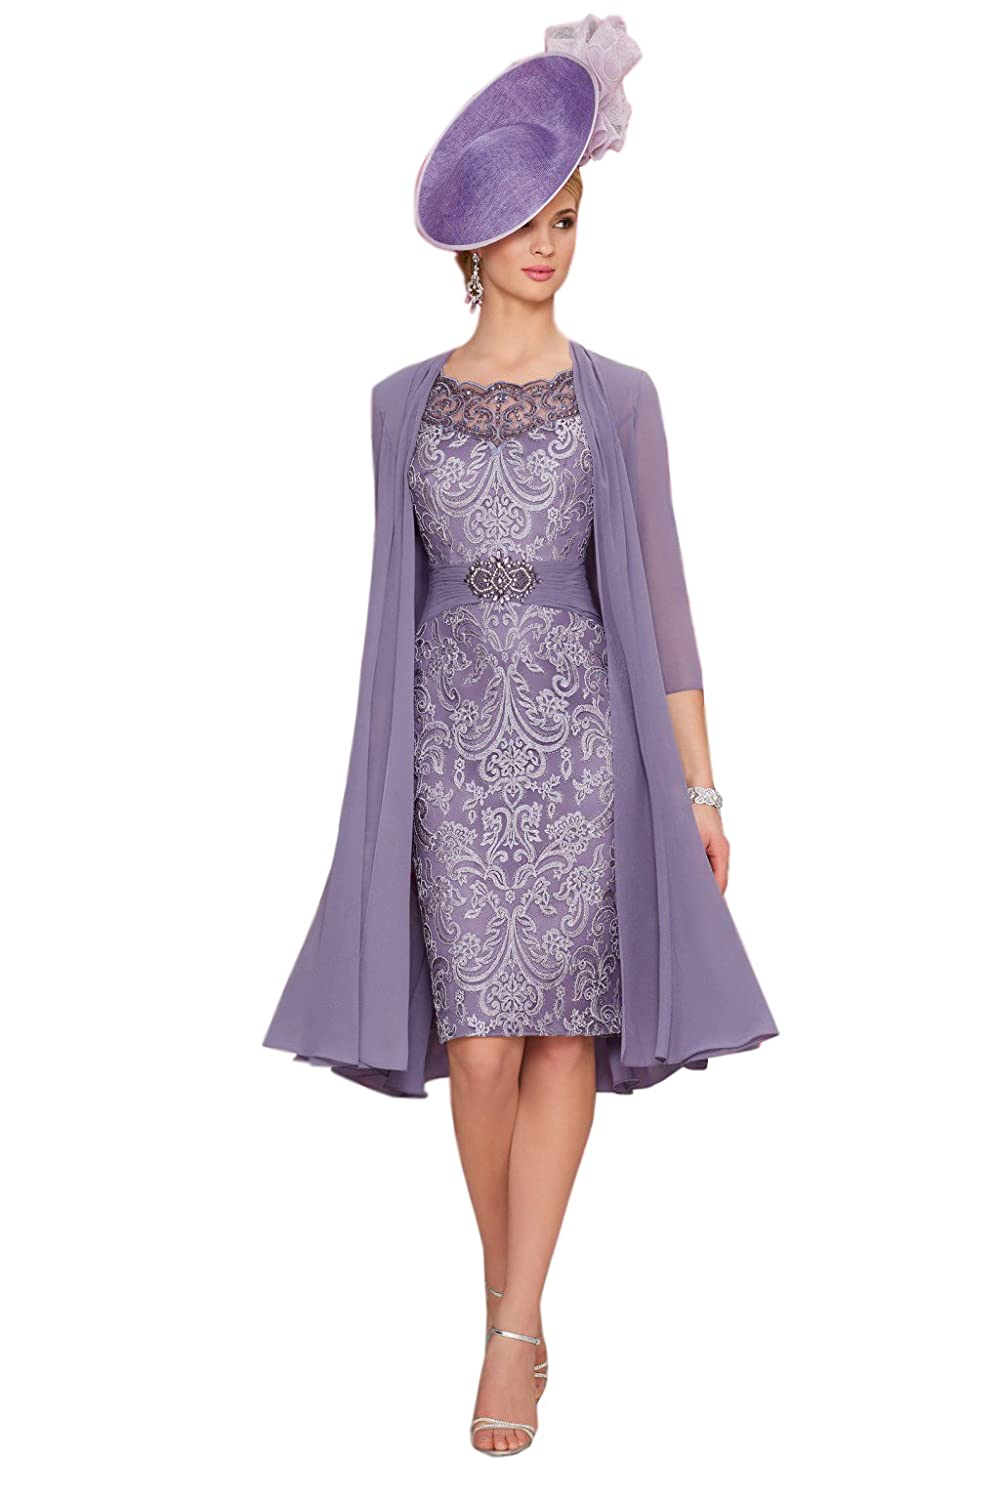 Kelaixiang Knee Length Purple Lace Mother of The Bride Dress With Chiffon Jacket at Amazon Womens Clothing store: